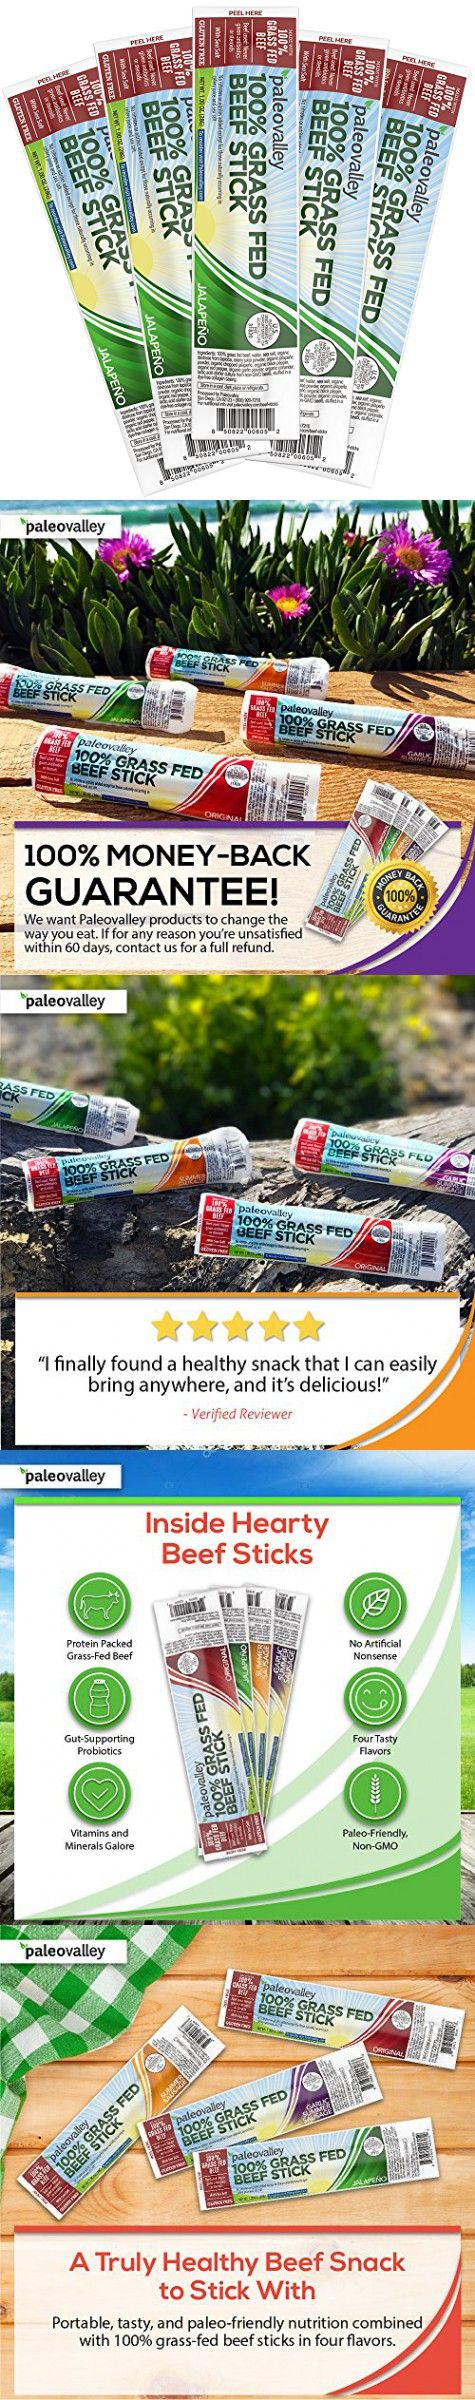 Beef Sticks Paleovalley 100 Grass Fed Beef Sticks 10 Count Jalapeno Flavor 100 Grass Fed Finished Beef Paleo Friendly Non Gmo Gluten And Soy Fre Grass Fed Beef Beef Sticks Paleo Friendly